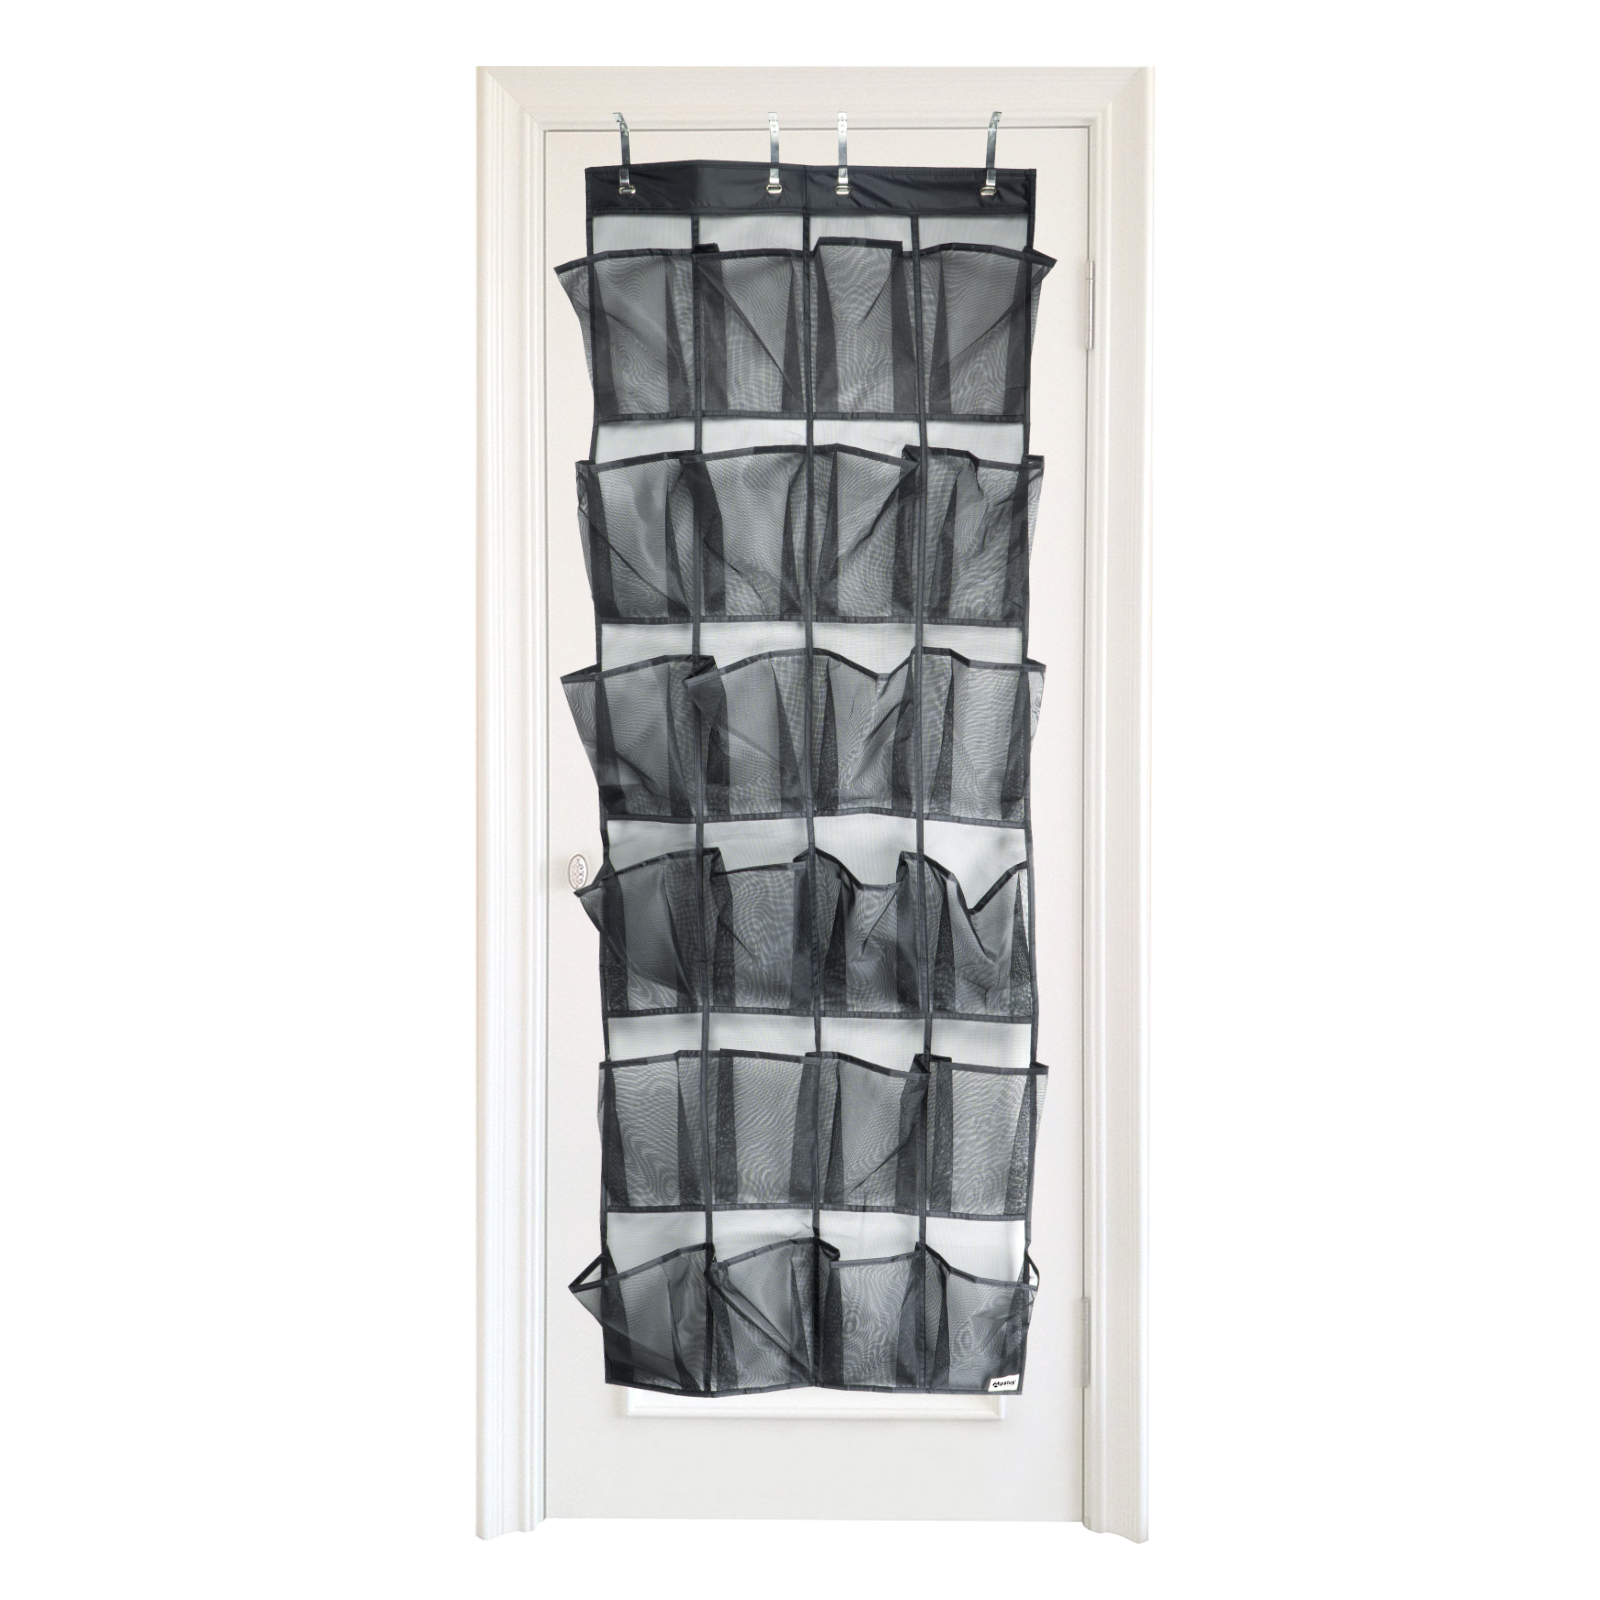 Apalus Over the Door Shoe Organizer, Door-mounted storage, Sneakers, Sandals Rack with Mesh Pockets for Easy storage with 4 Adjustable Door Hooks, Fits most door types/sizes (24 Pockets)